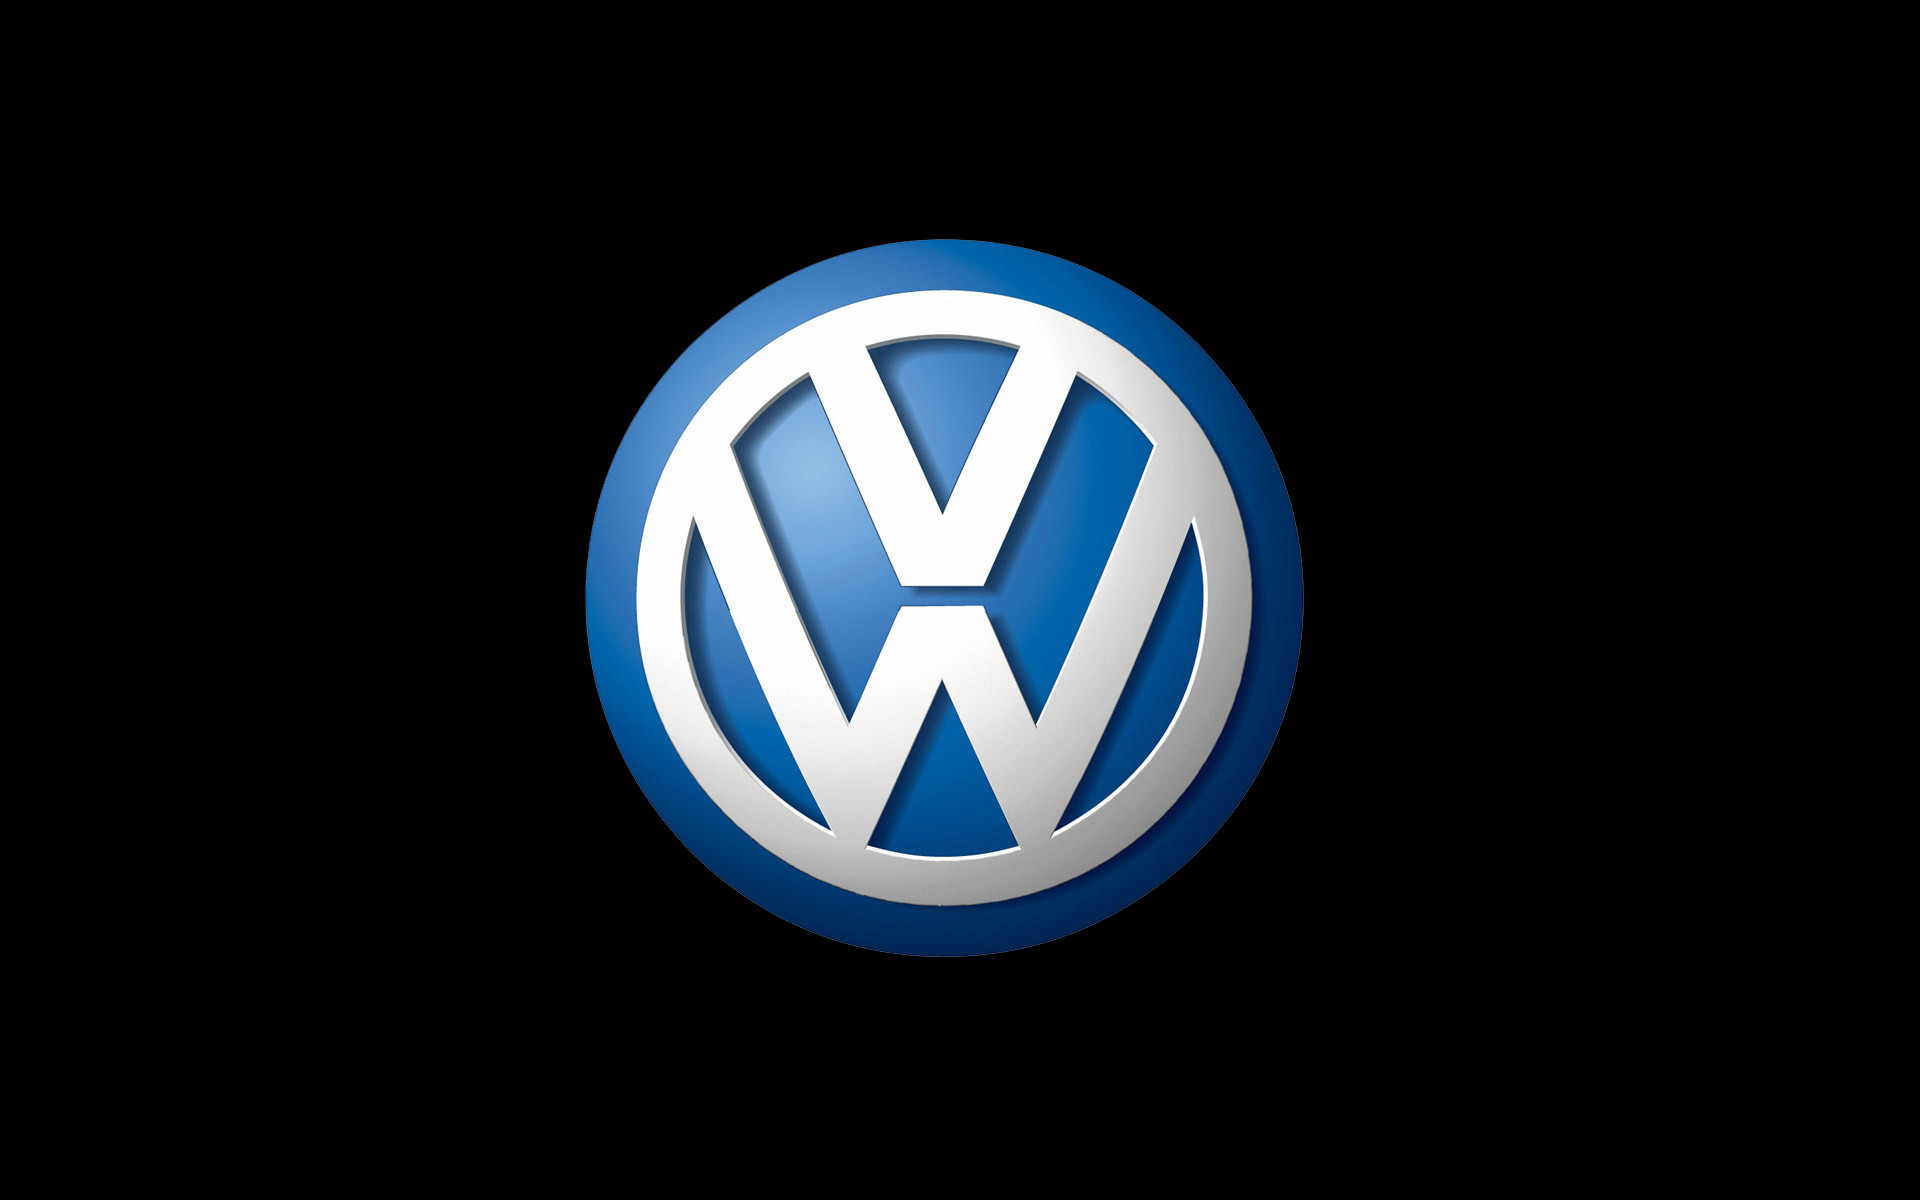 Most Viewed Symbol Wallpapers: VW Logo Wallpapers (60+ Images